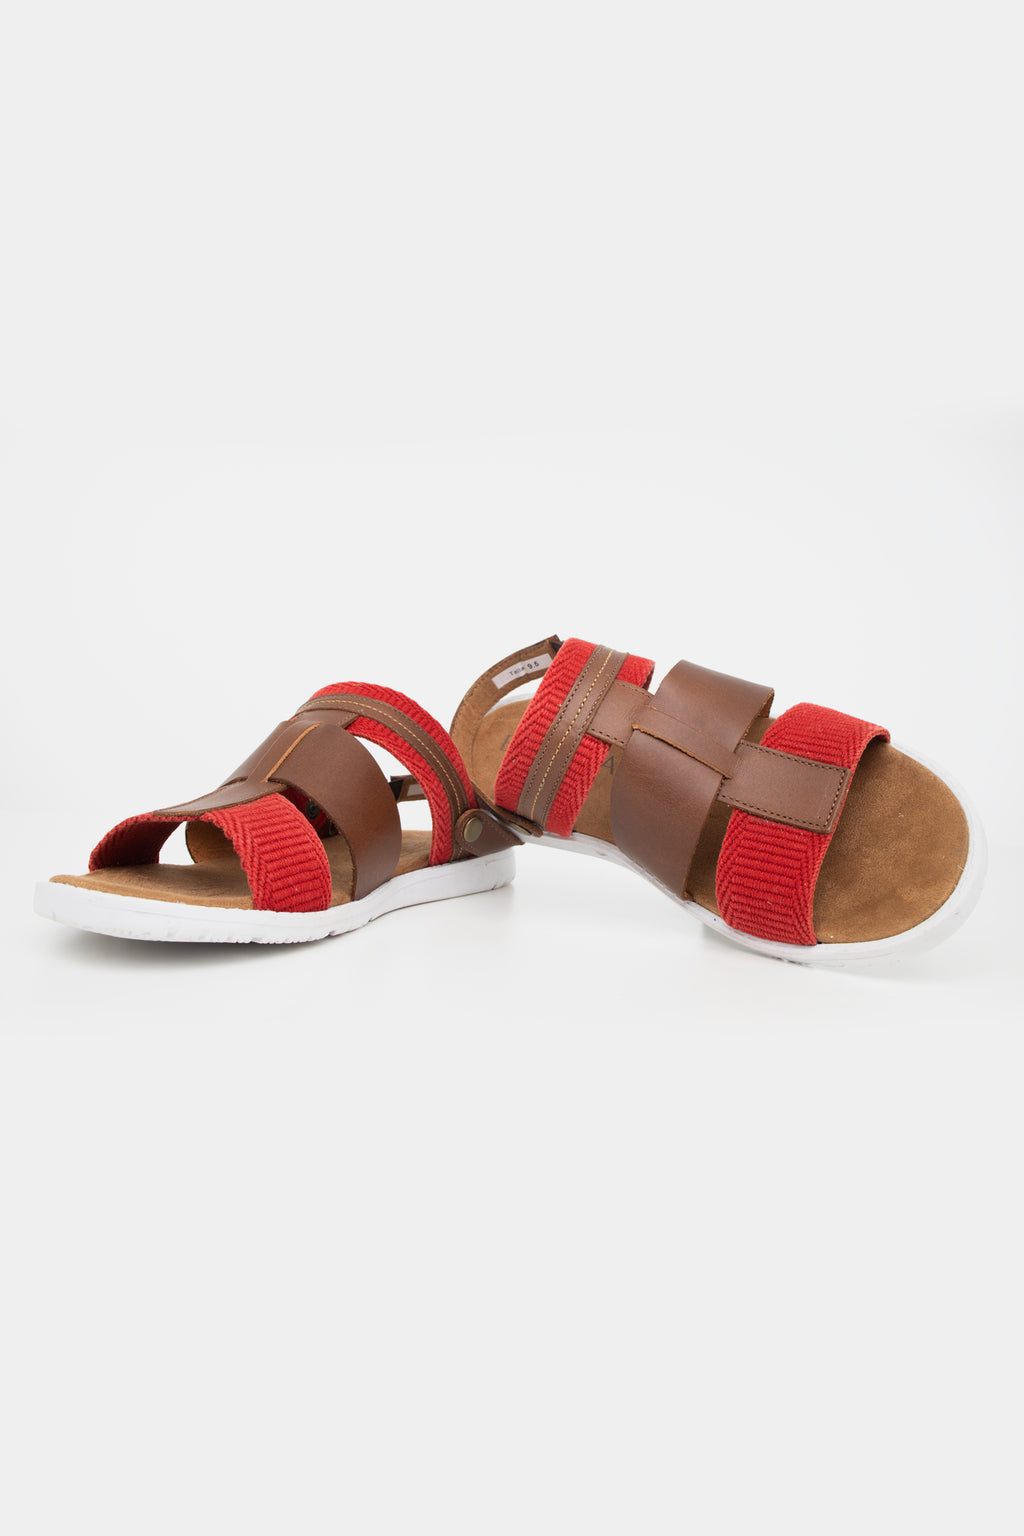 Boronea Sandals Red - Boronea